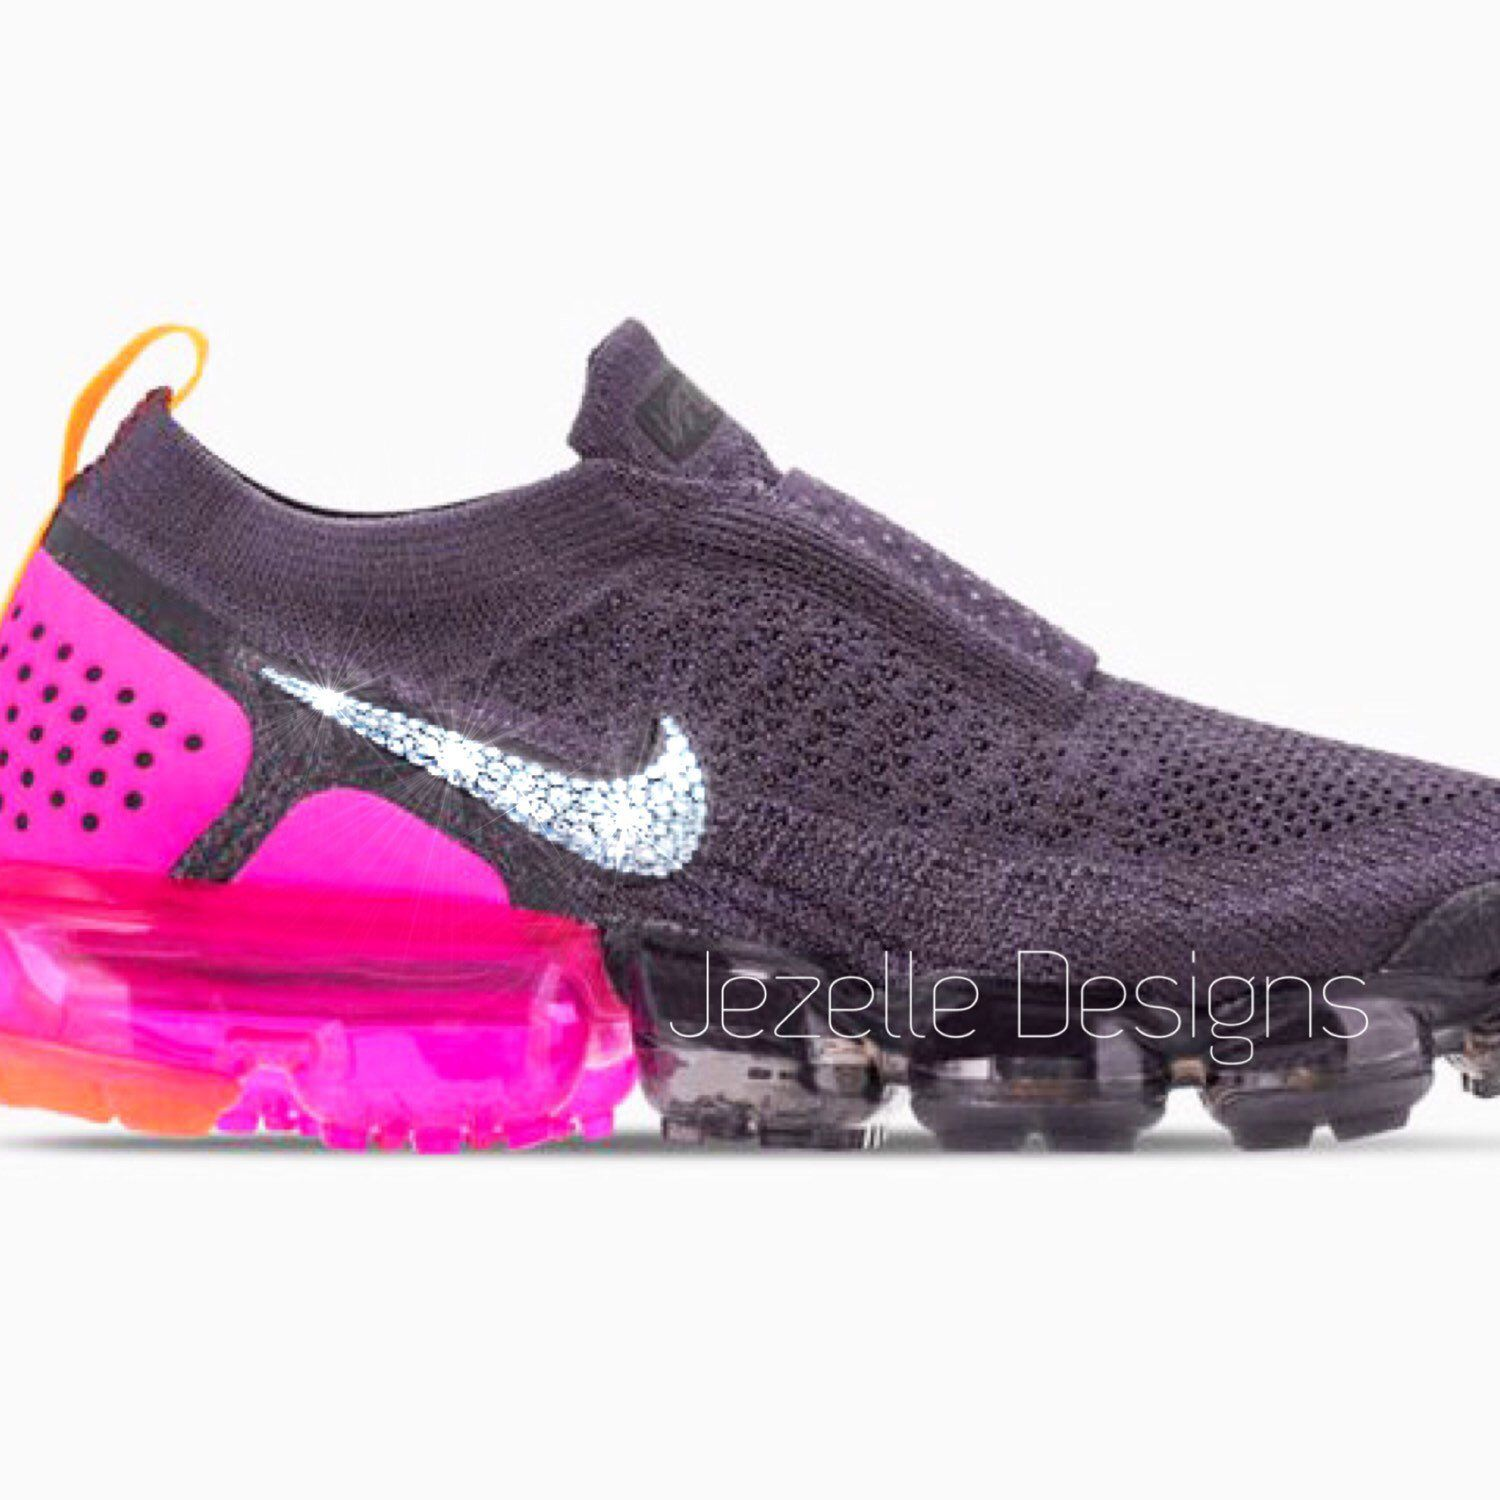 The shoes of your dreams! 😍 Swarovski Crystal Custom Hand Jeweled NIKE  VaporMax MOC2 by Jezelle Designs! 🤩💎 workoutmotivation 696079fc2